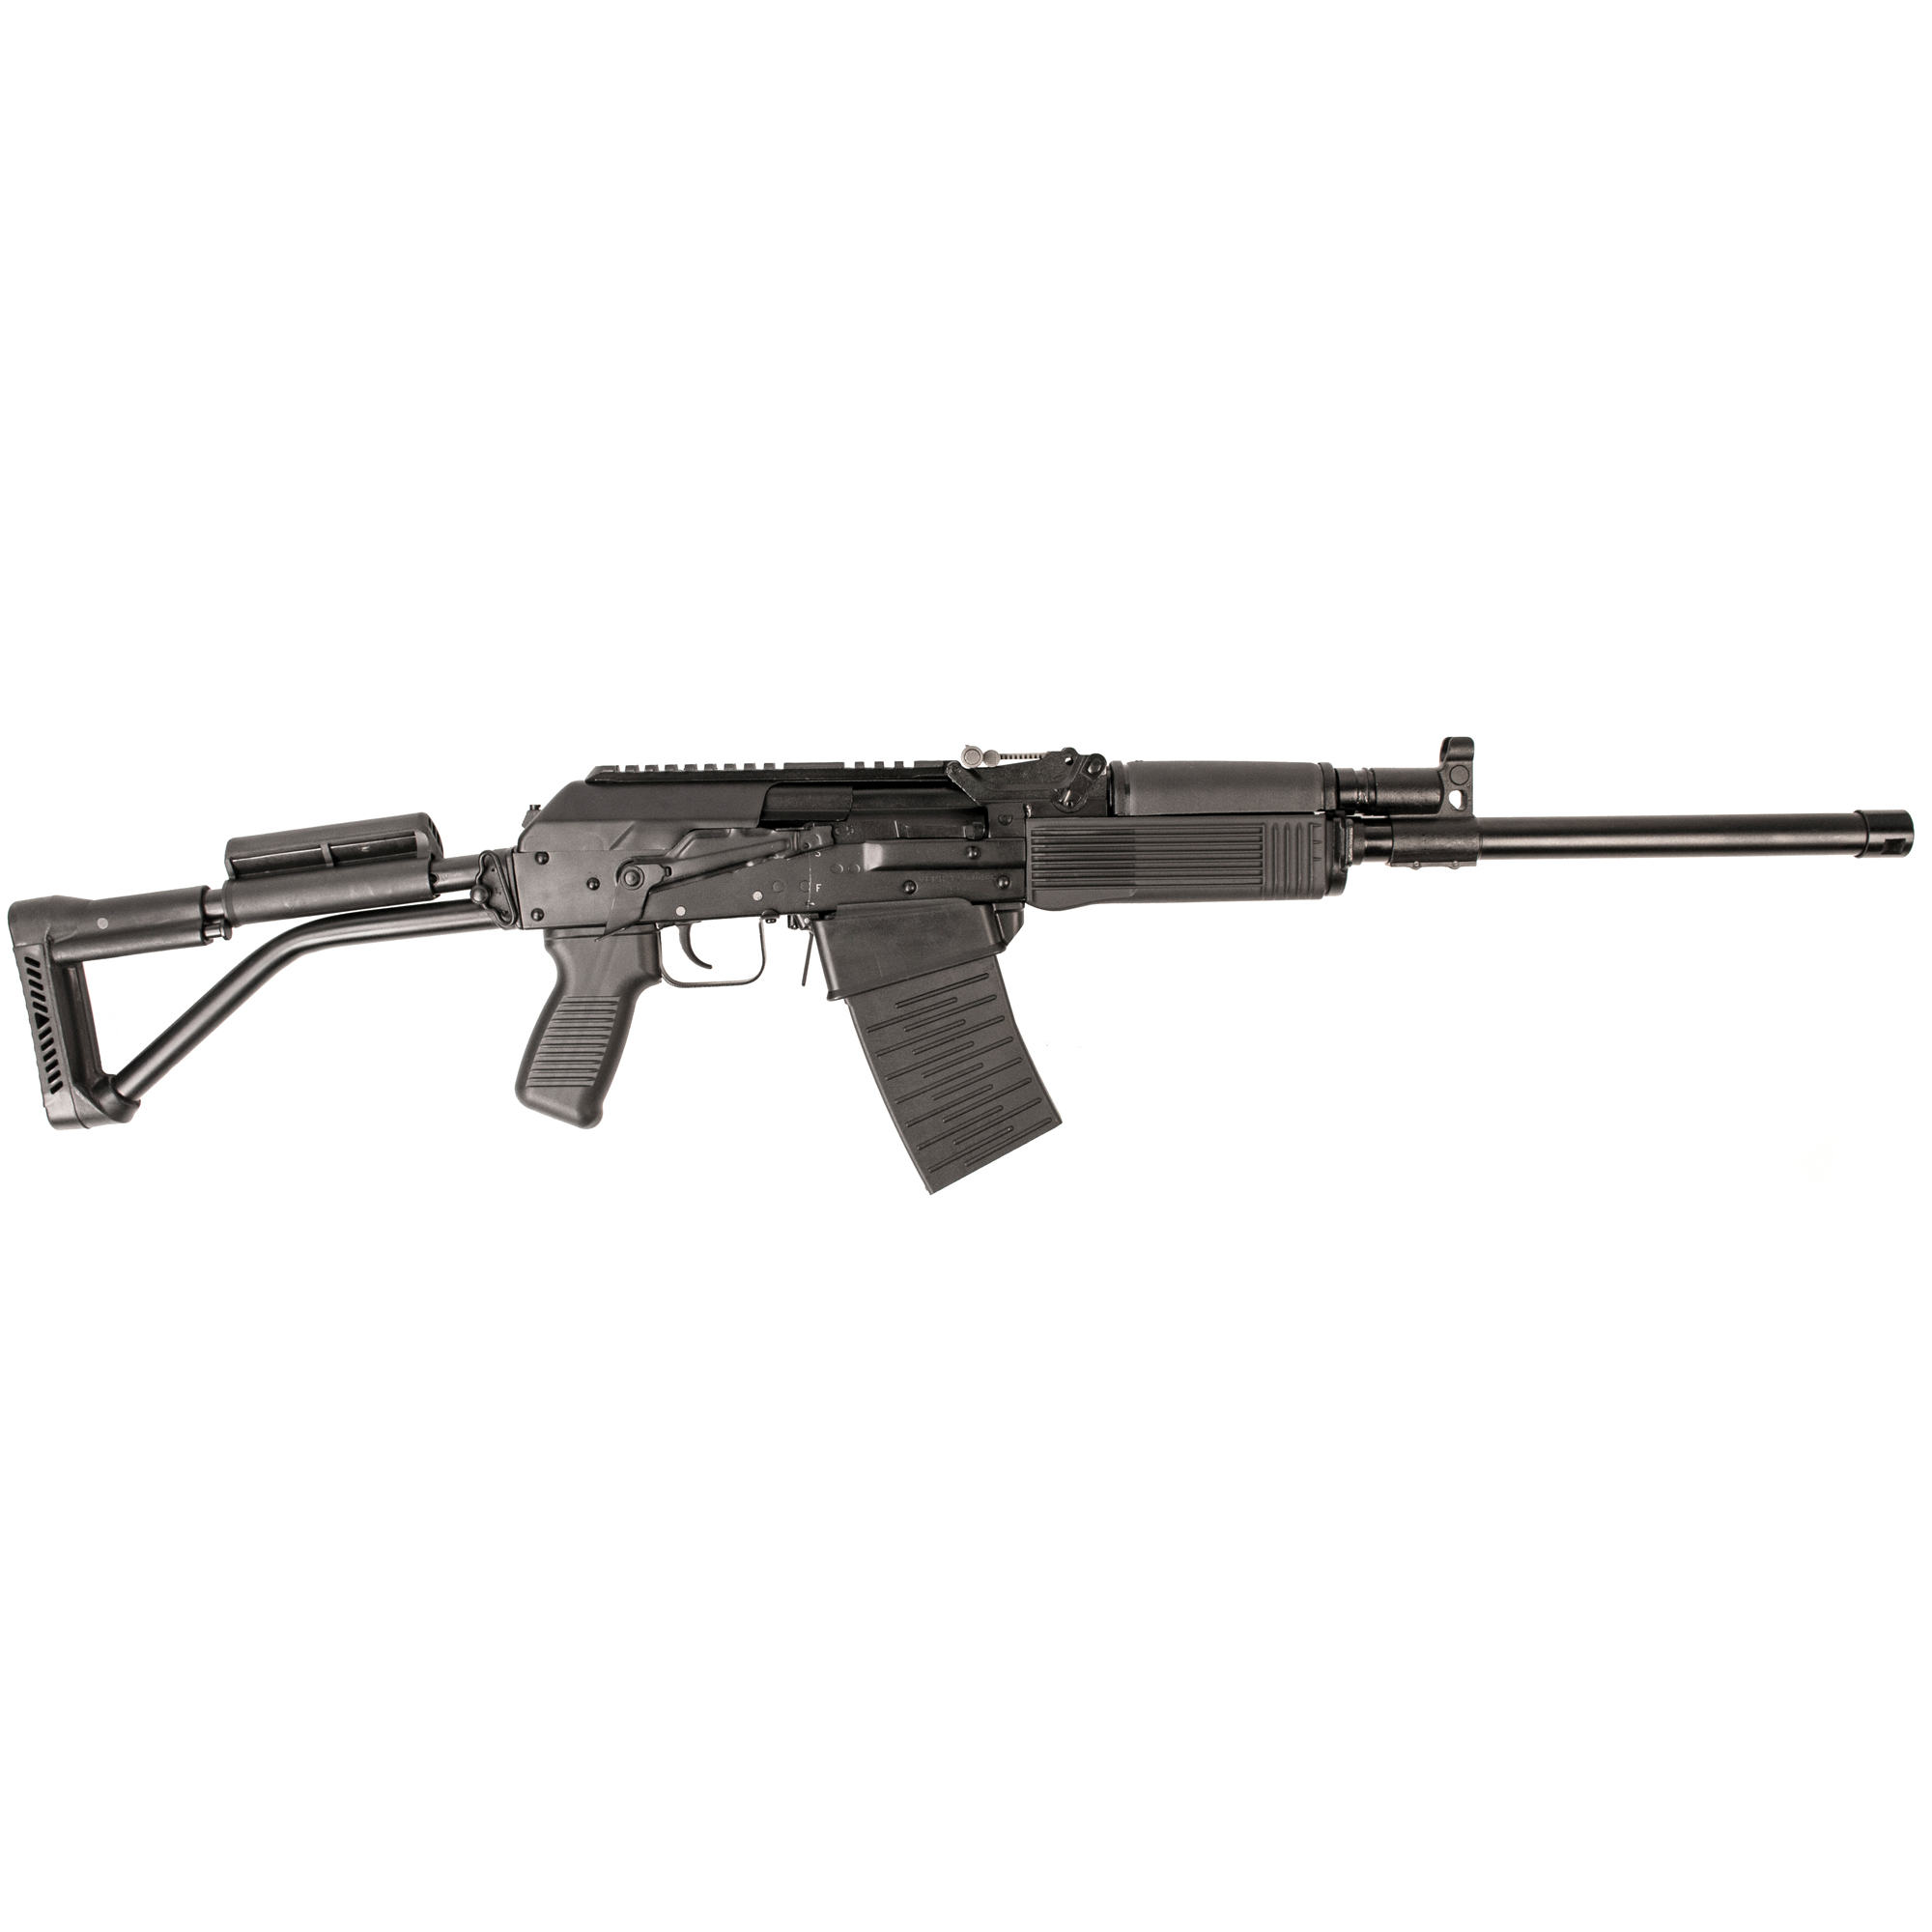 """Own a piece of Russian legacy before it's gone. Modeled after the iconic Kalashnikov rifle"""" the Russian semi-automatic VEPR-12 was specifically designed for law enforcement"""" military"""" and competition. The VEPR-12 features an ambidextrous safety and improved ergonomics that reduce recoil."""